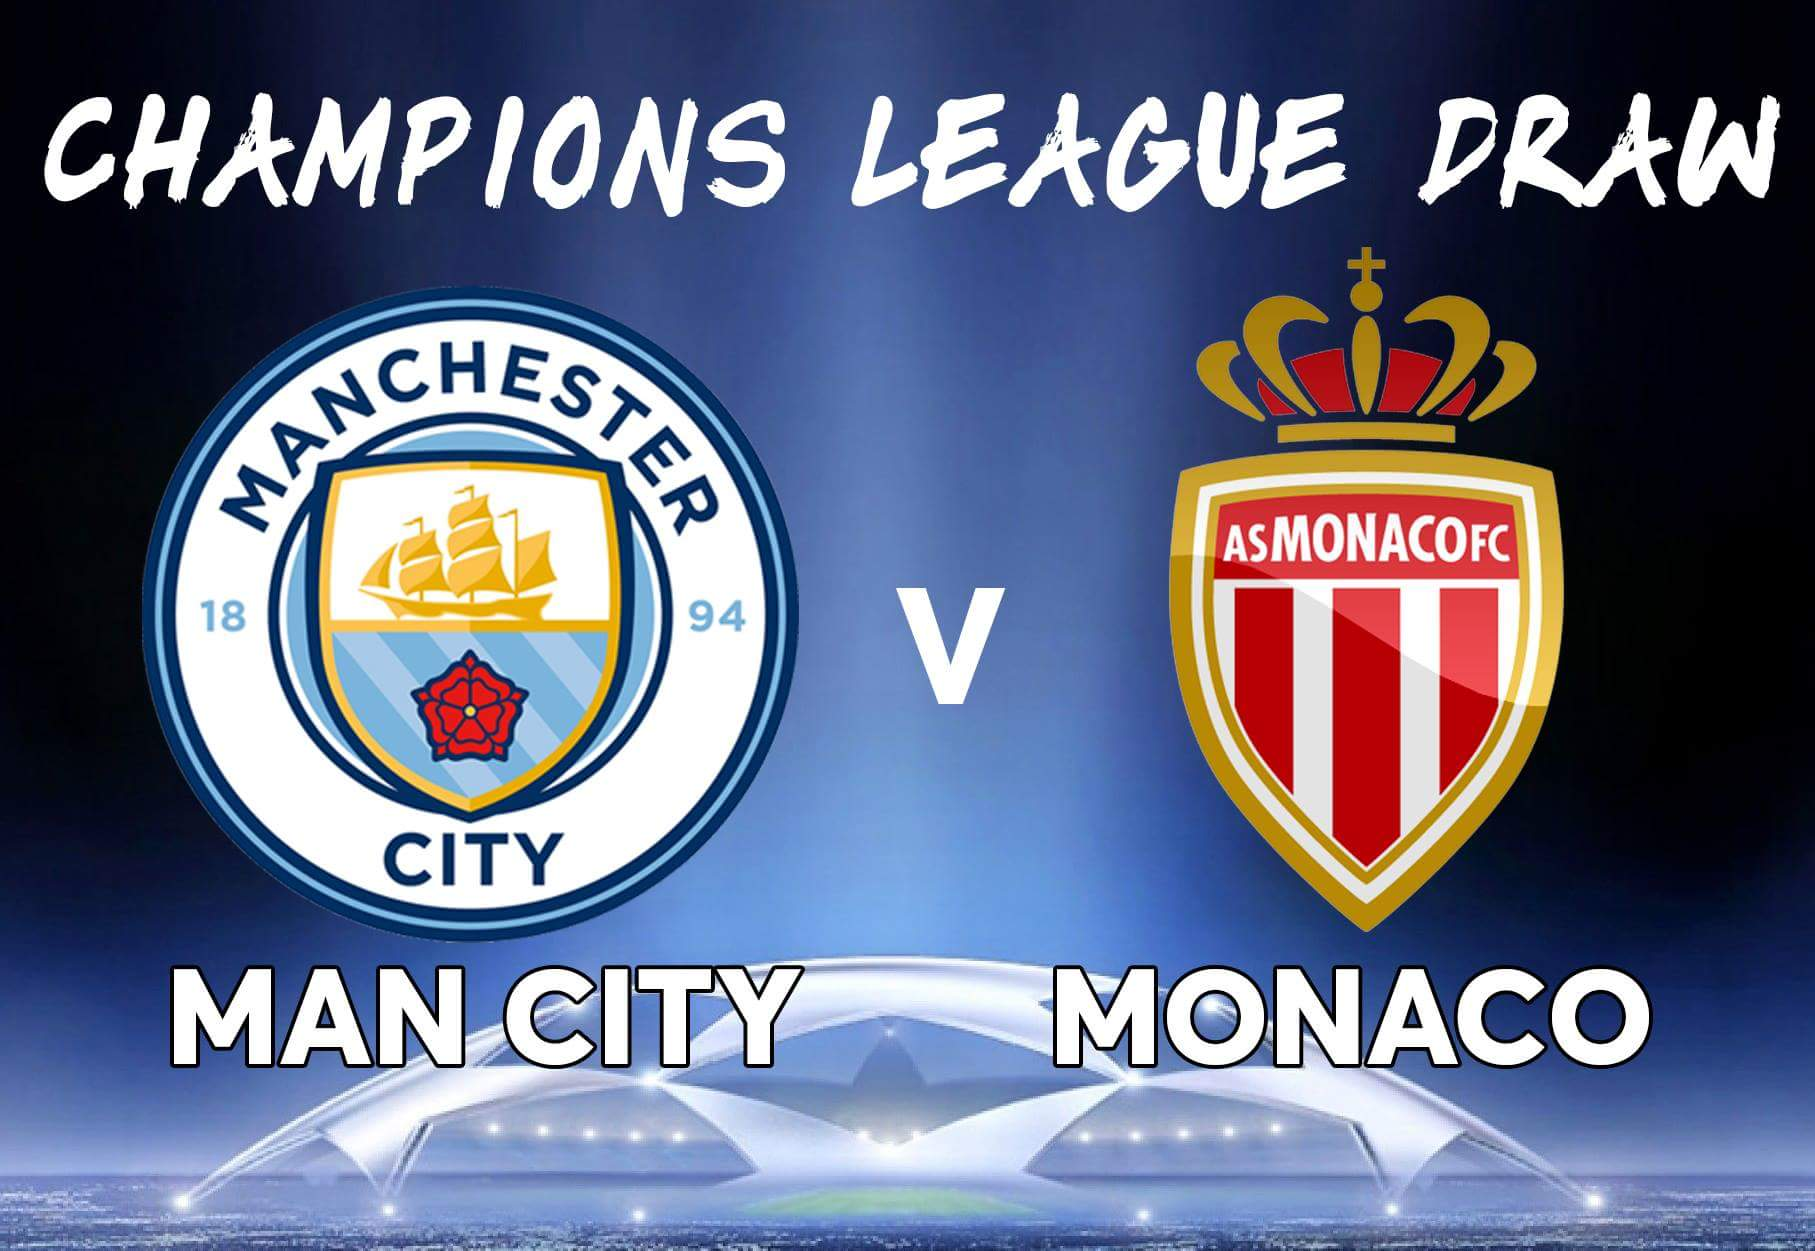 DIRETTA MANCHESTER CITY MONACO Streaming Gratis: info Rojadirecta, web links e in chiaro Canale 5